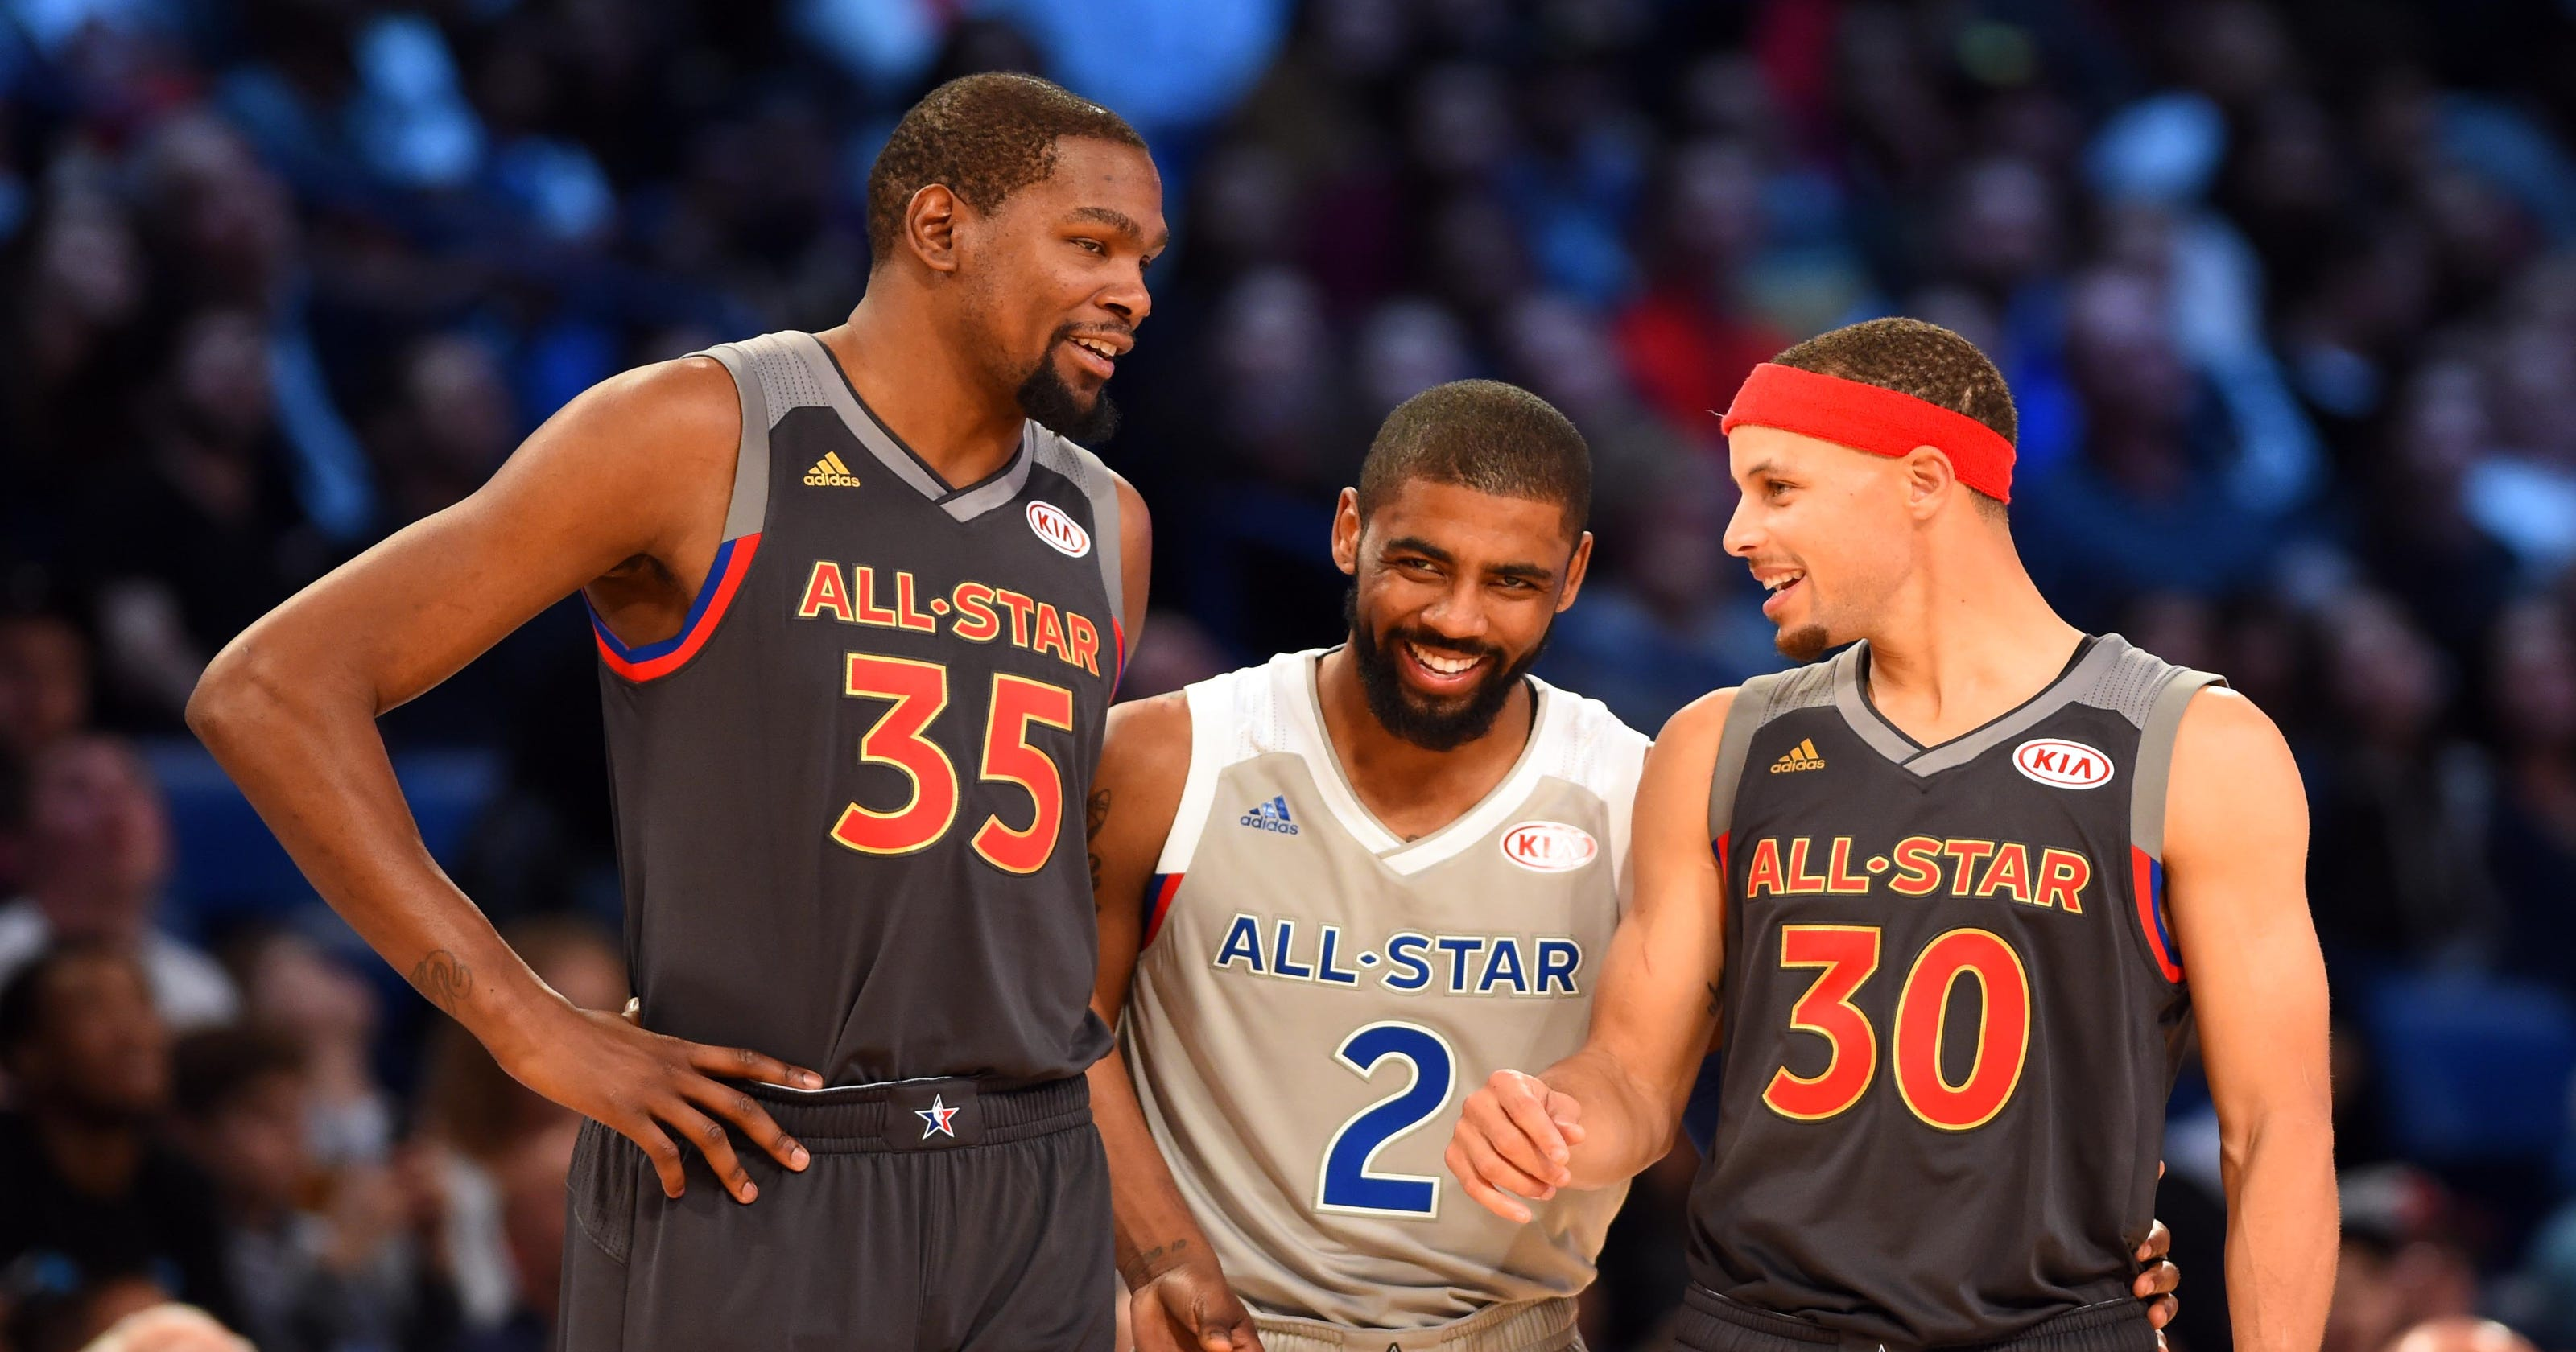 2020 NBA All-Star Game to be held in Chicago b1312661d